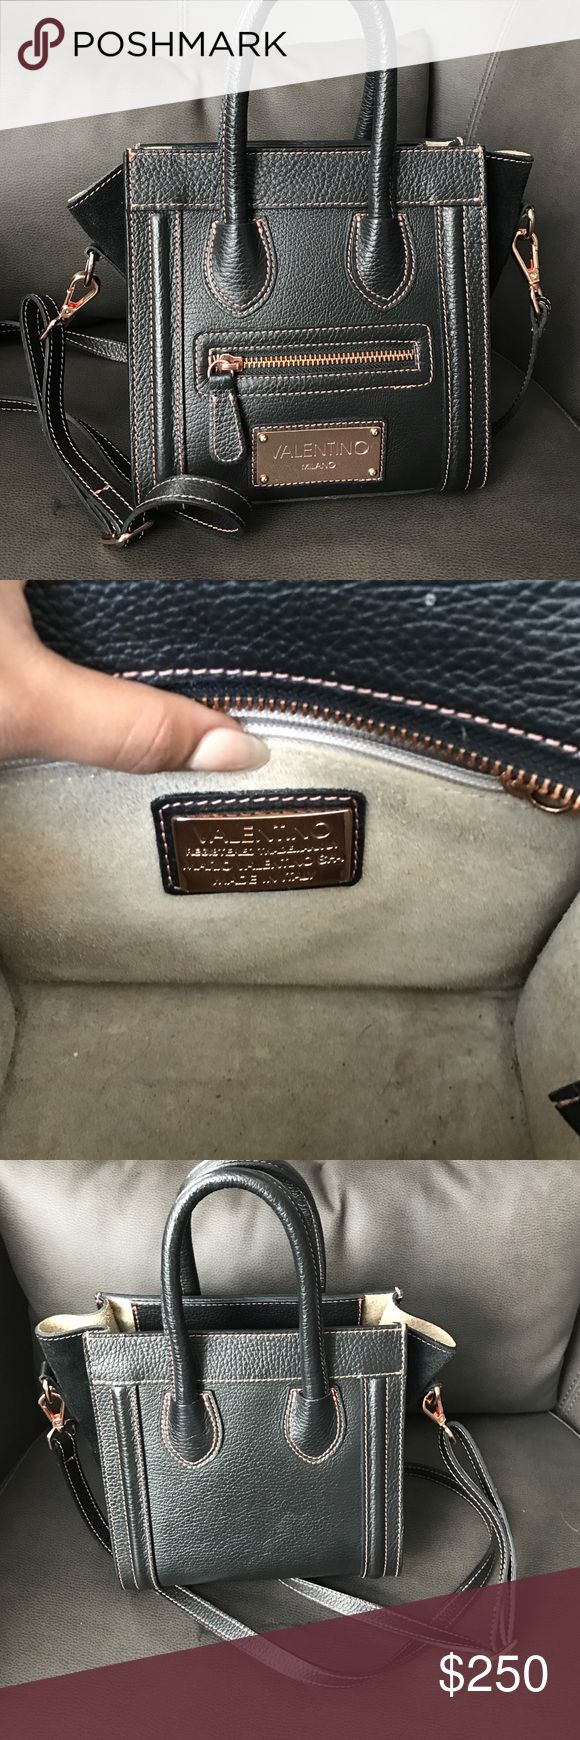 Leidy Valentino crossbody bag Like new cross body bag. Authentic comes with dust bag and tags. Picture of the interior is before cleaning. Before sending I will fully clean. It'll be just like brand new! No marking on bag at all Valentino Bags Crossbody Bags